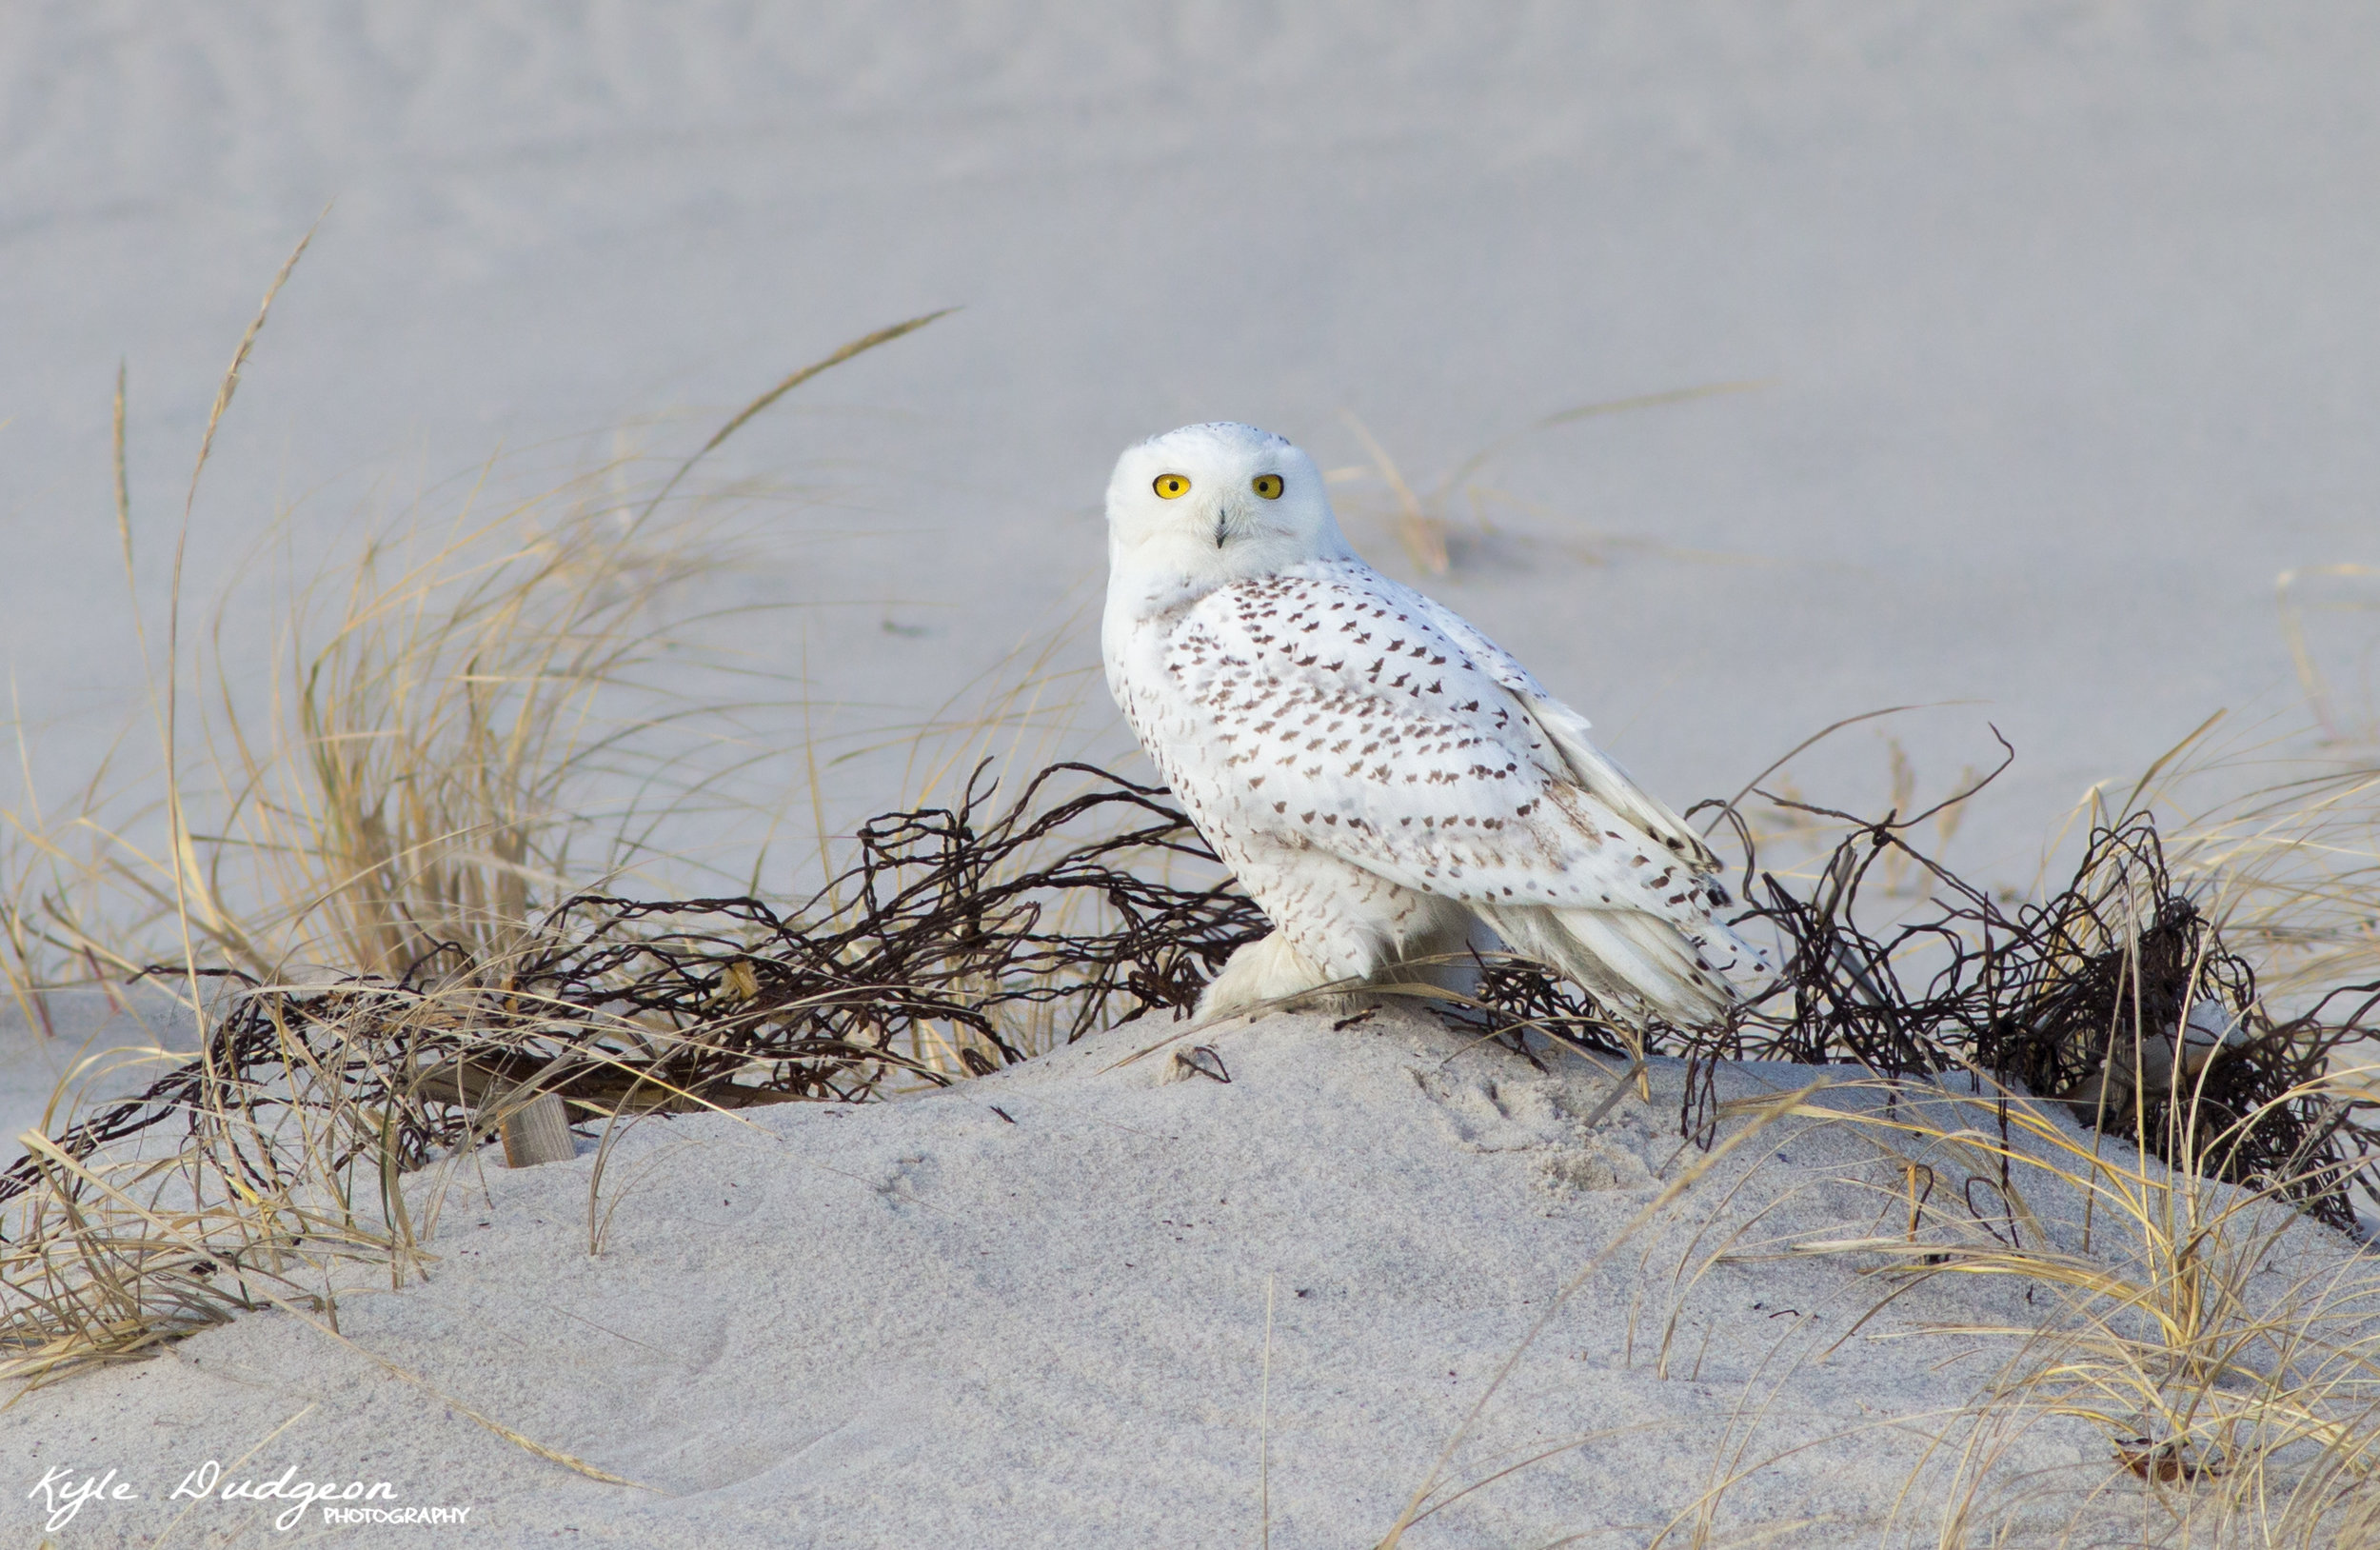 Sometimes capturing the bird in its surrounding environment is just as interesting as a close up portrait. In this case, this snowy owl was a bit distant, so rather than disturbing it by moving forward, I decided to take an image that would capture the surrounding environment as well as the bird. The background isn't perfectly solid, but dunes and grass complete the foreground with more of the same features. Most importantly, the bird is unobstructed.